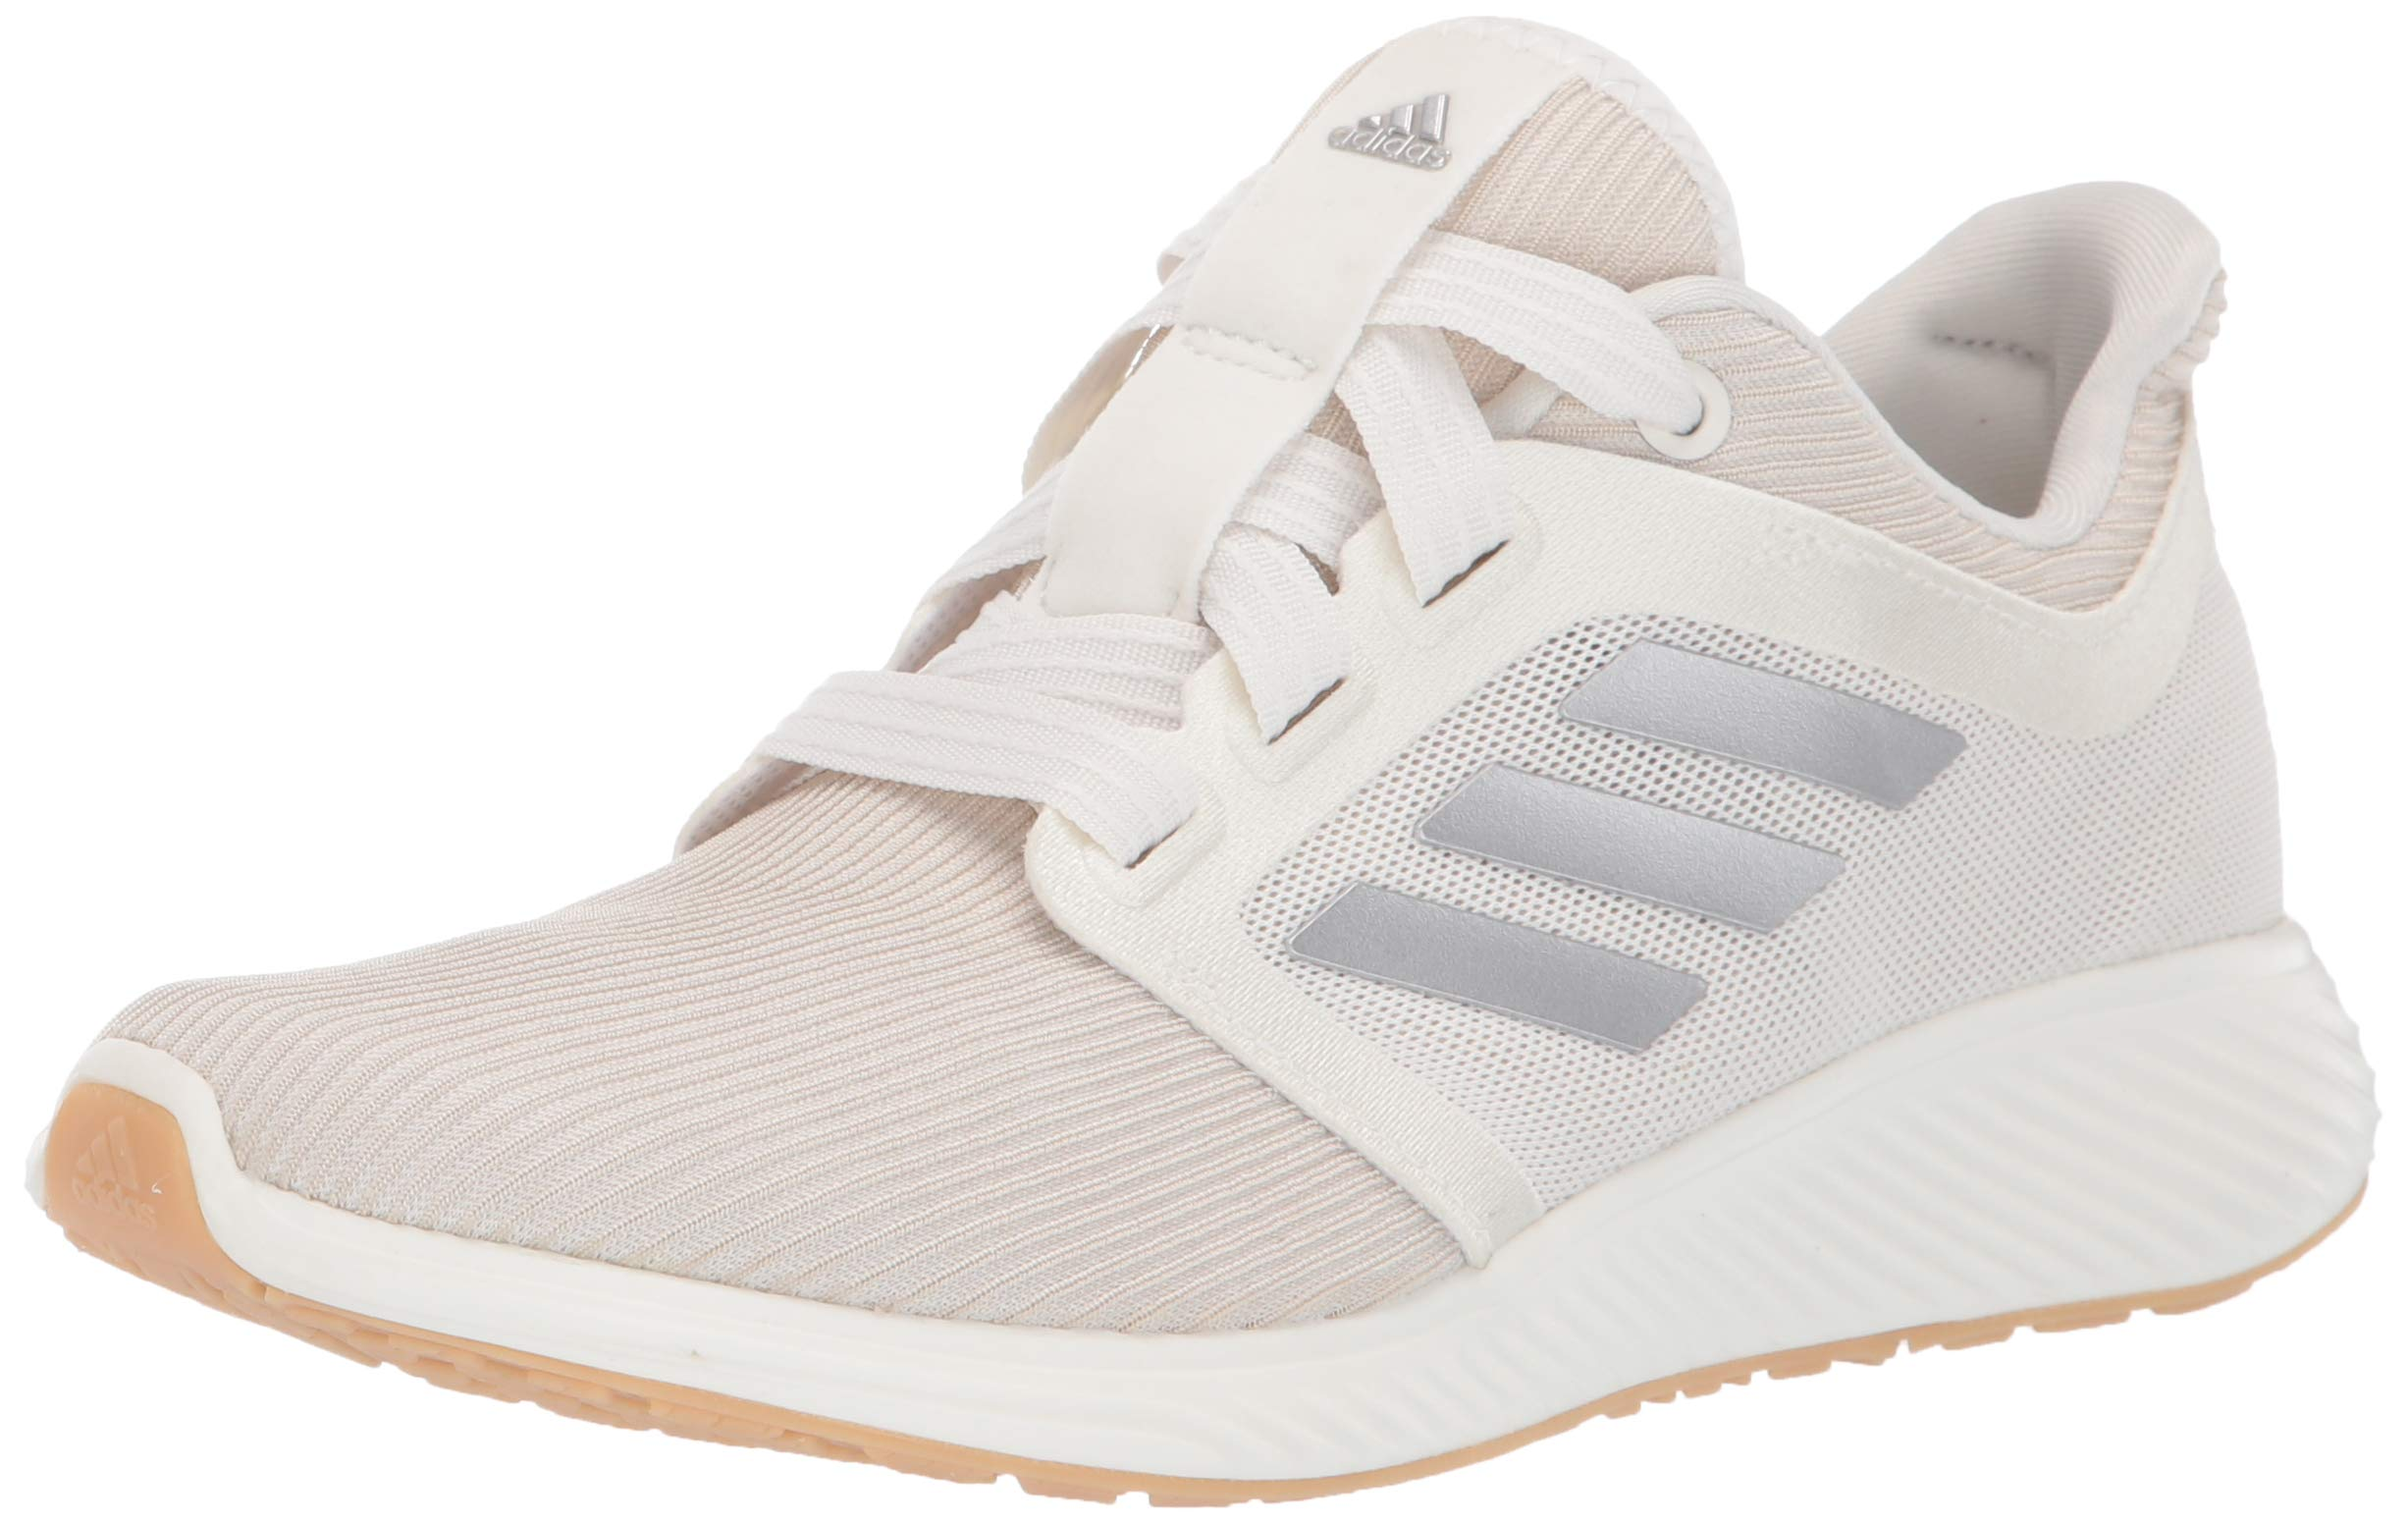 adidas Women's Edge Lux 3 Running Shoe, st Pale Nude/tech Silver Metallic/Cloud White, 6 M US